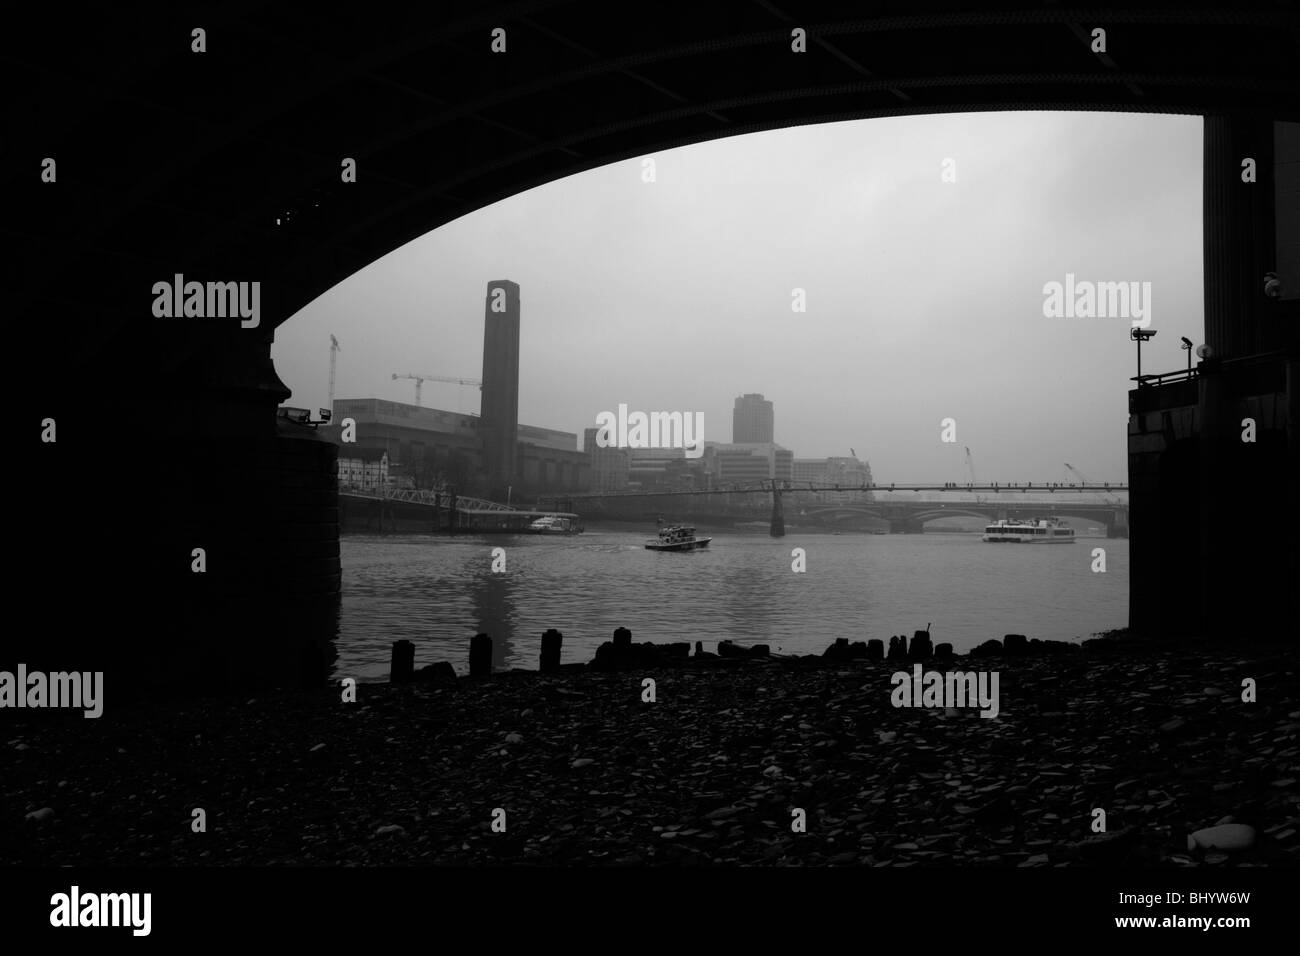 View of River Thames at Tate Modern and MIllennium Bridge from under Southwark Bridge, Bankside, London - Stock Image